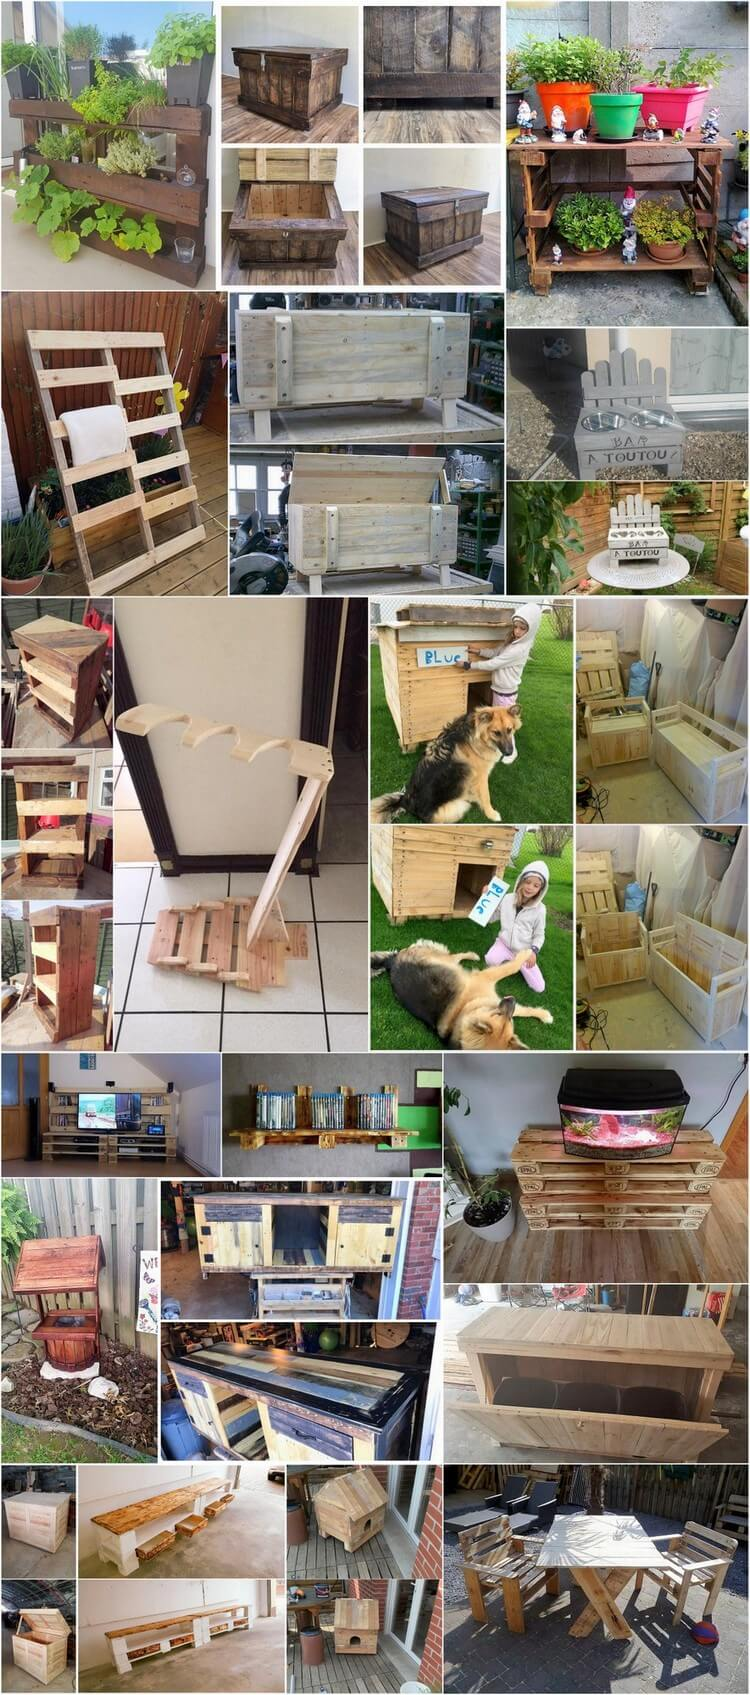 Innovative Ideas to Upcycle Old Wood Pallets